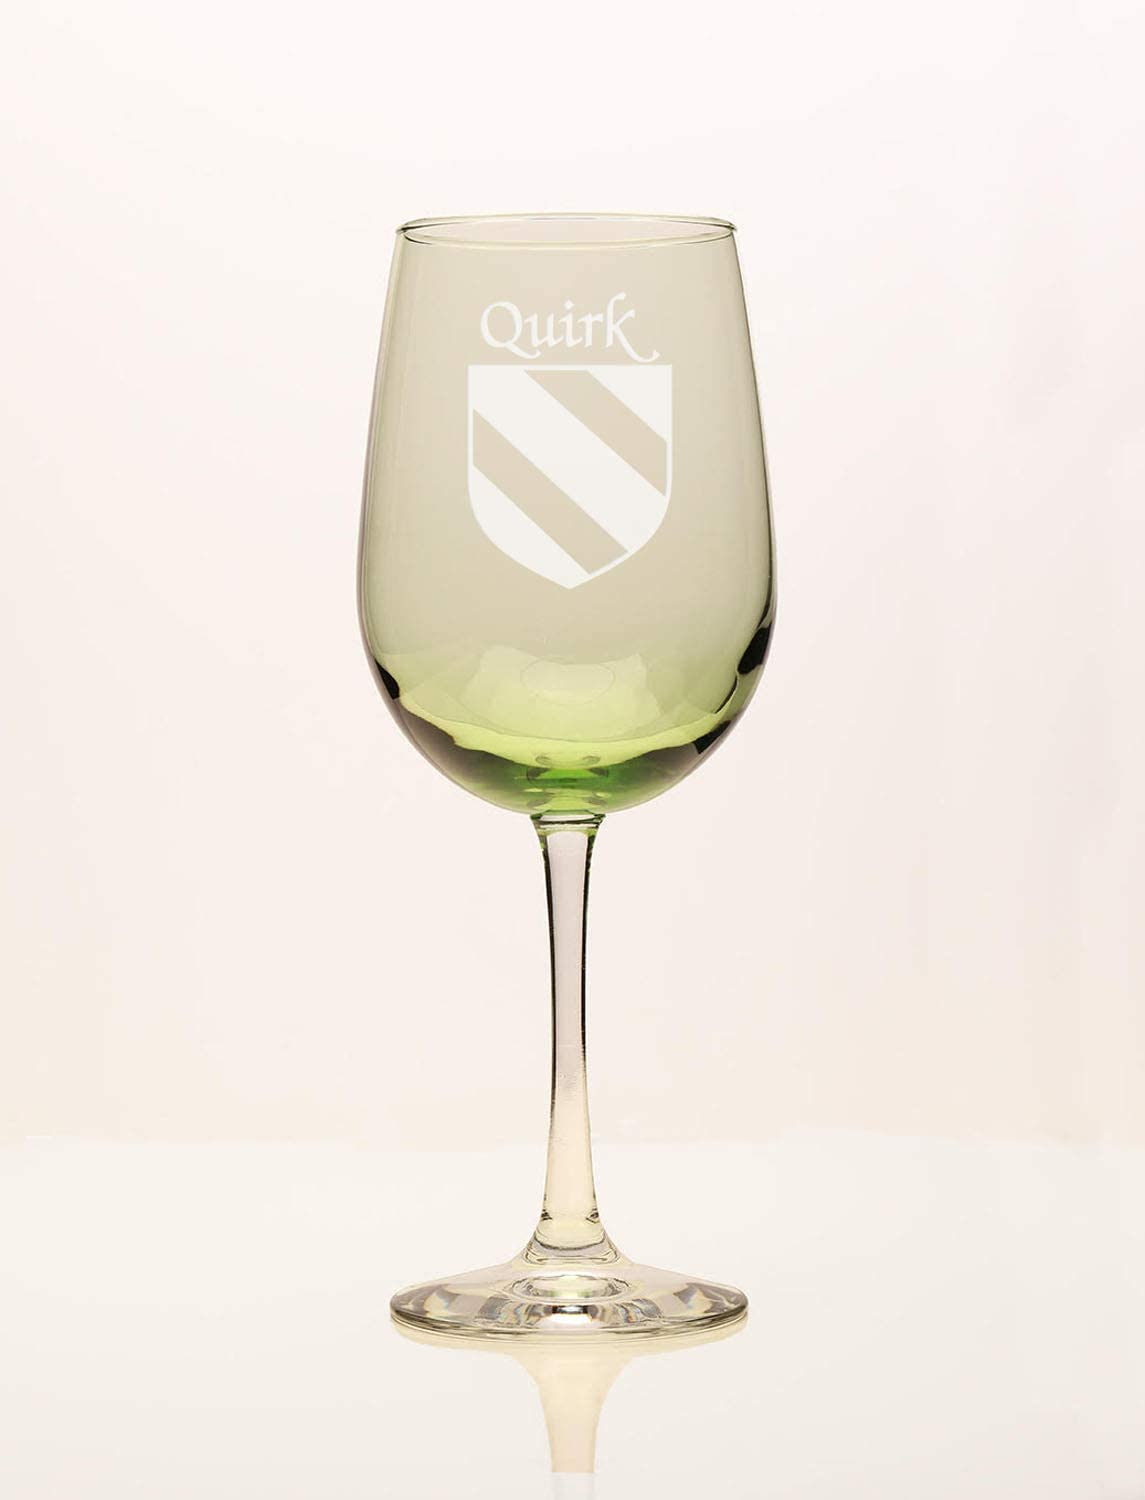 Quirk Excellence Irish Coat of Arms Green Glass Popular brand Wine